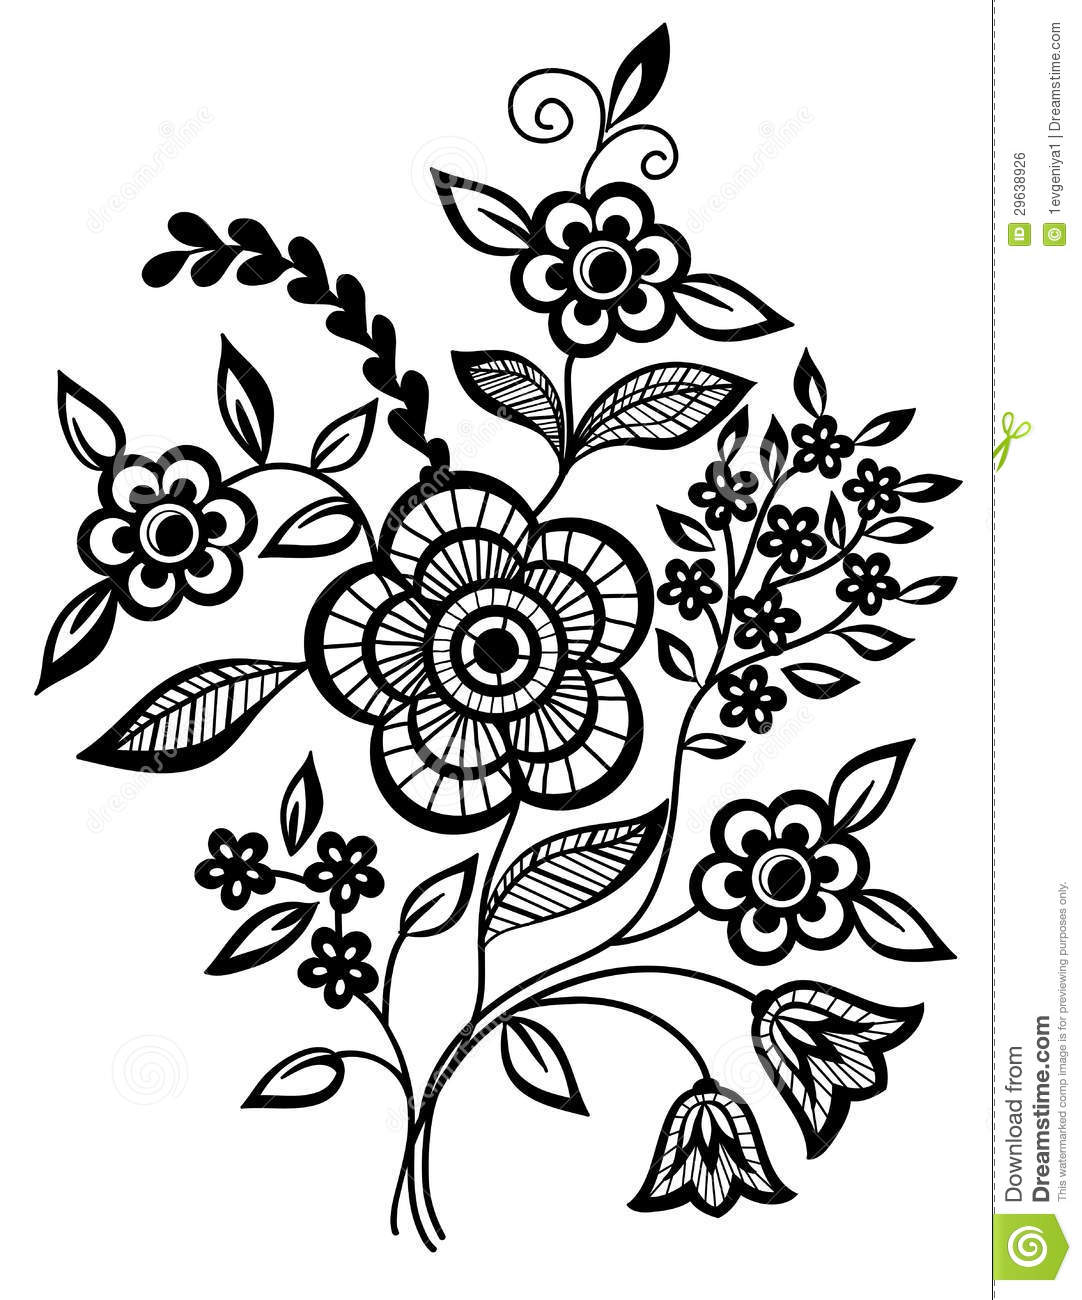 black and white floral design patterns black and white flowers and